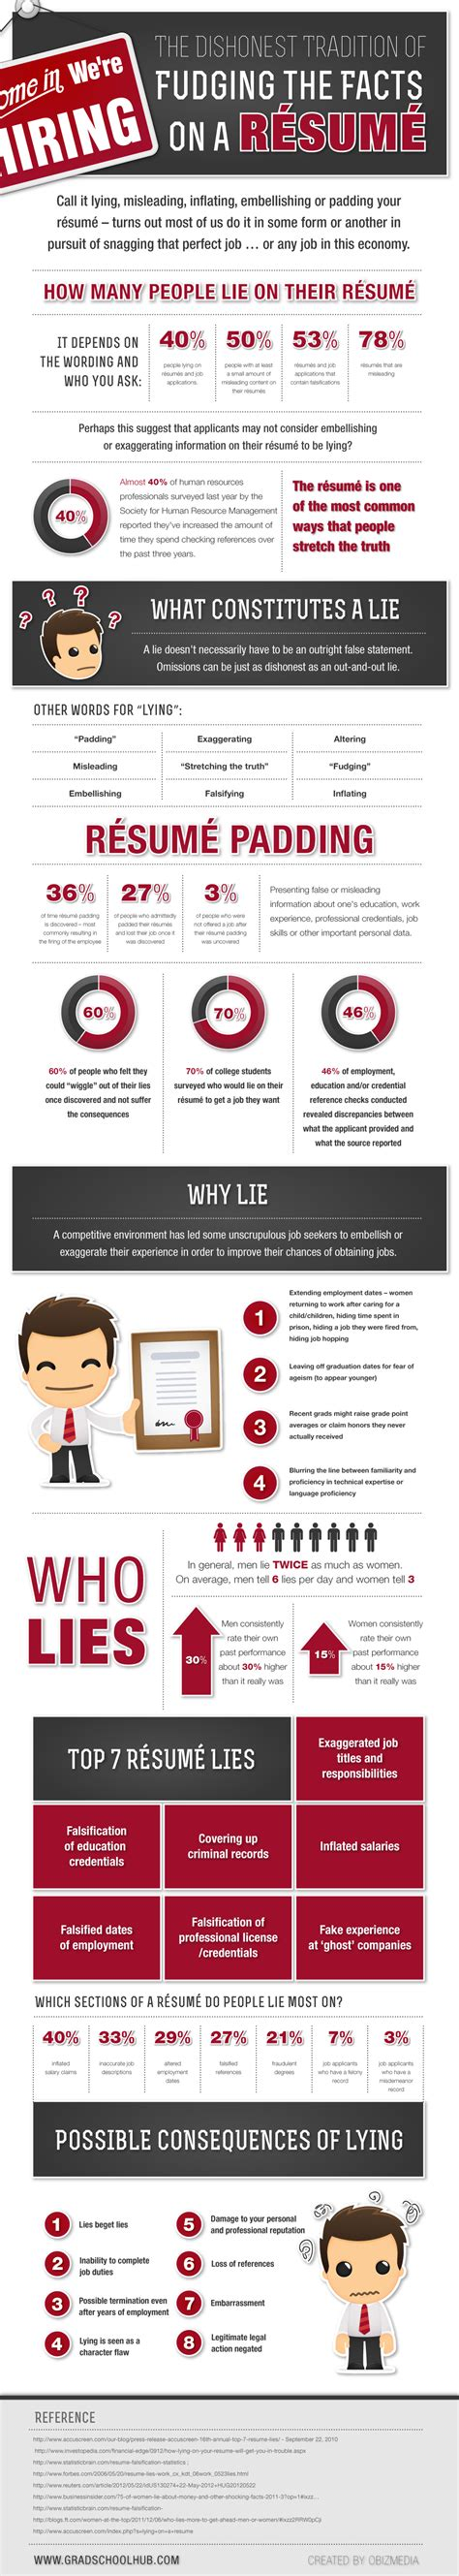 the different ways lie on a resume flexjobs